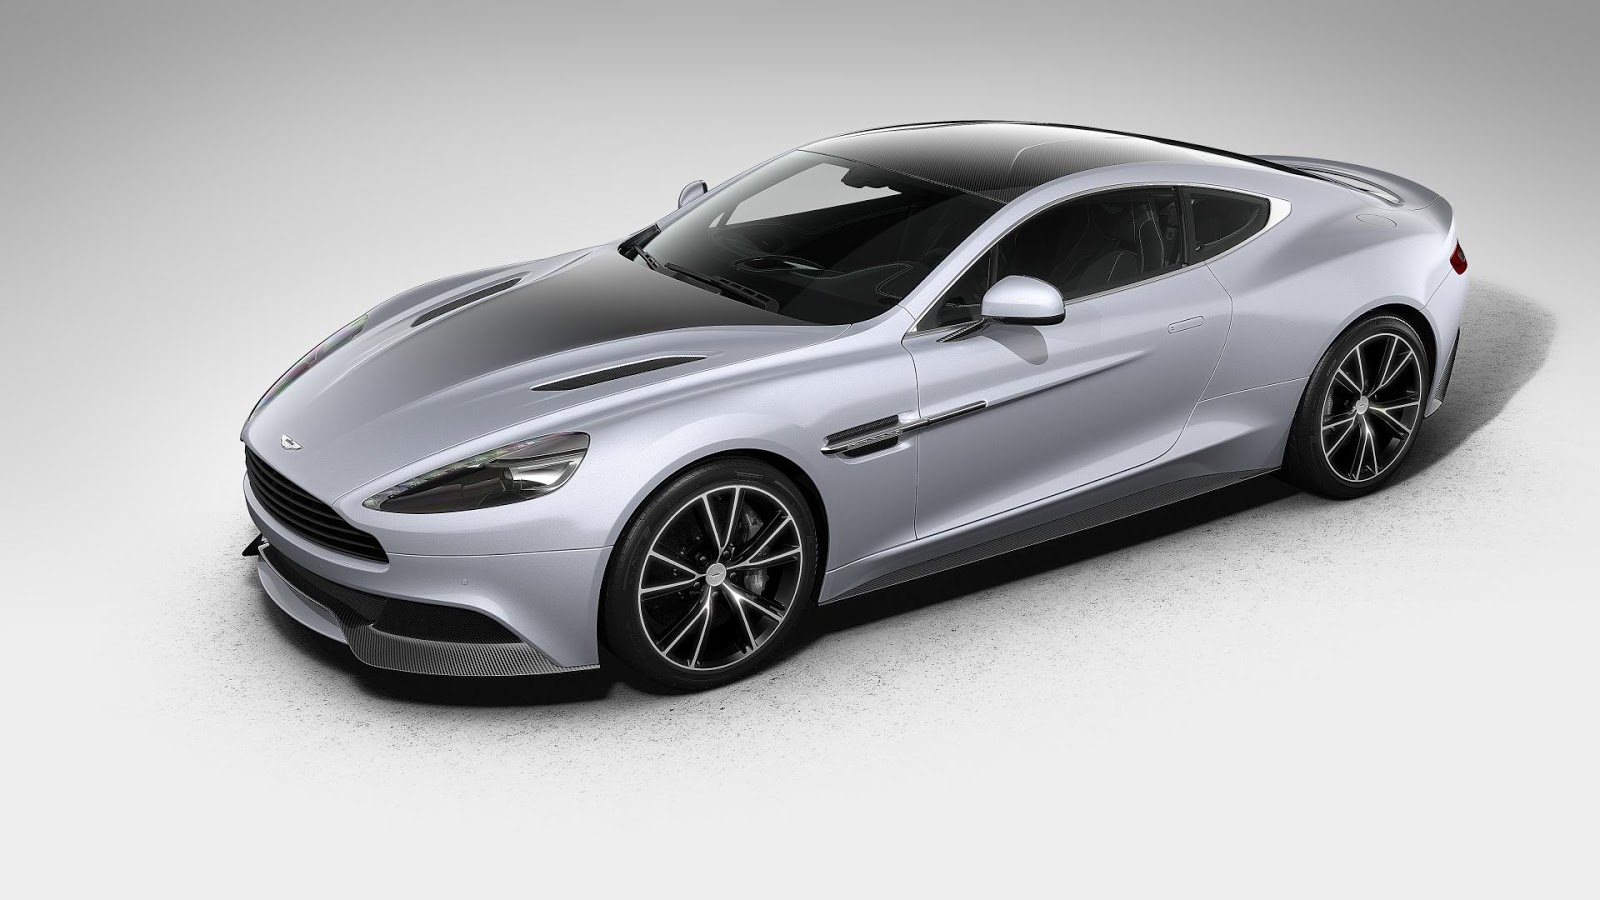 aston martin vanquish centenary 2013 hottest car wallpapers. Cars Review. Best American Auto & Cars Review